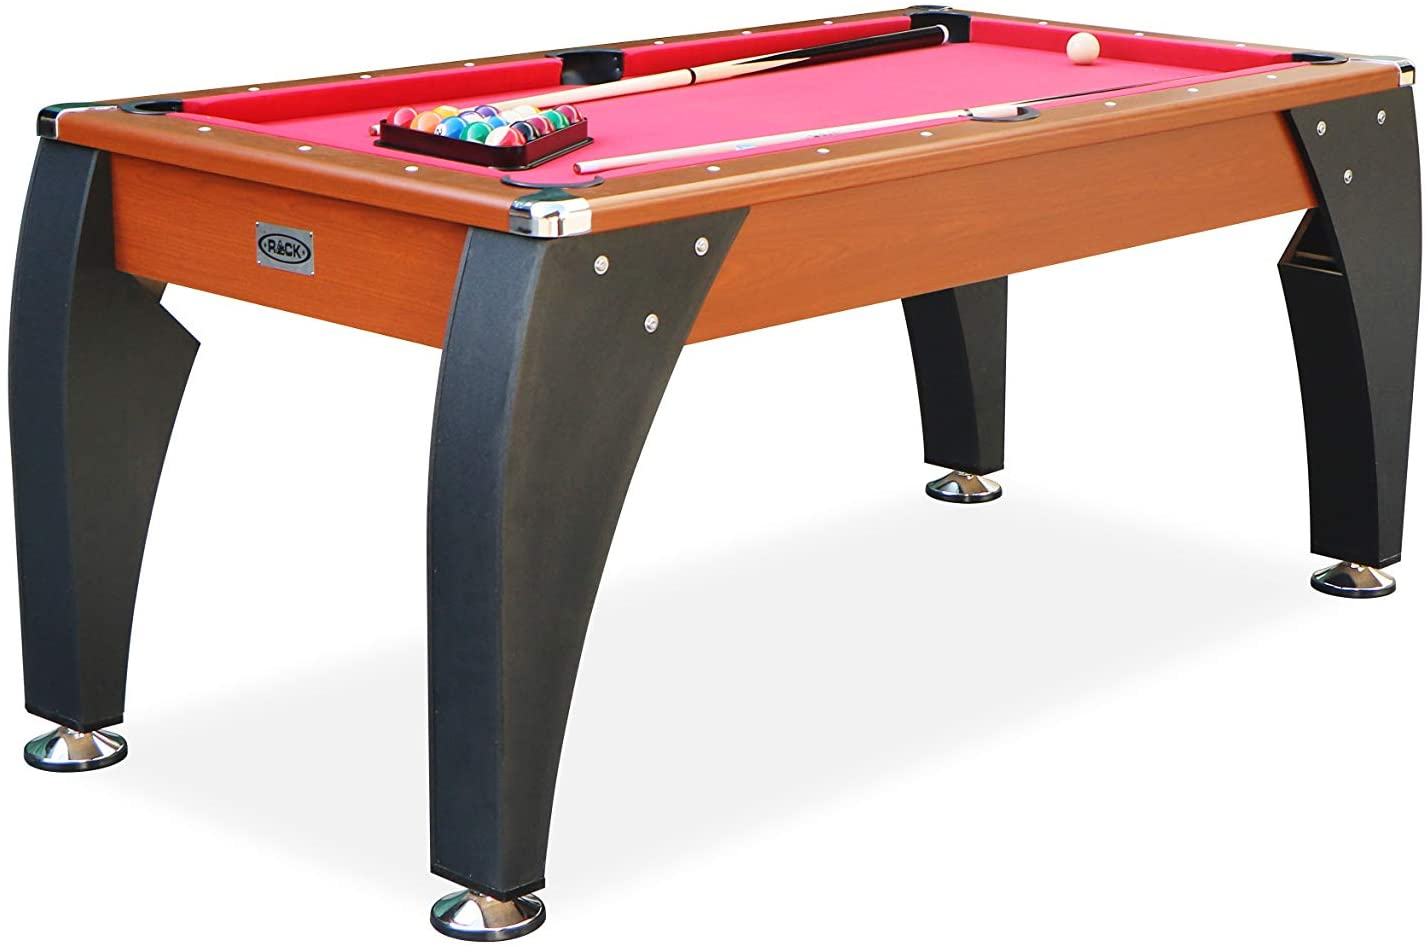 RACK - 5.5-Feet Stark Billiard